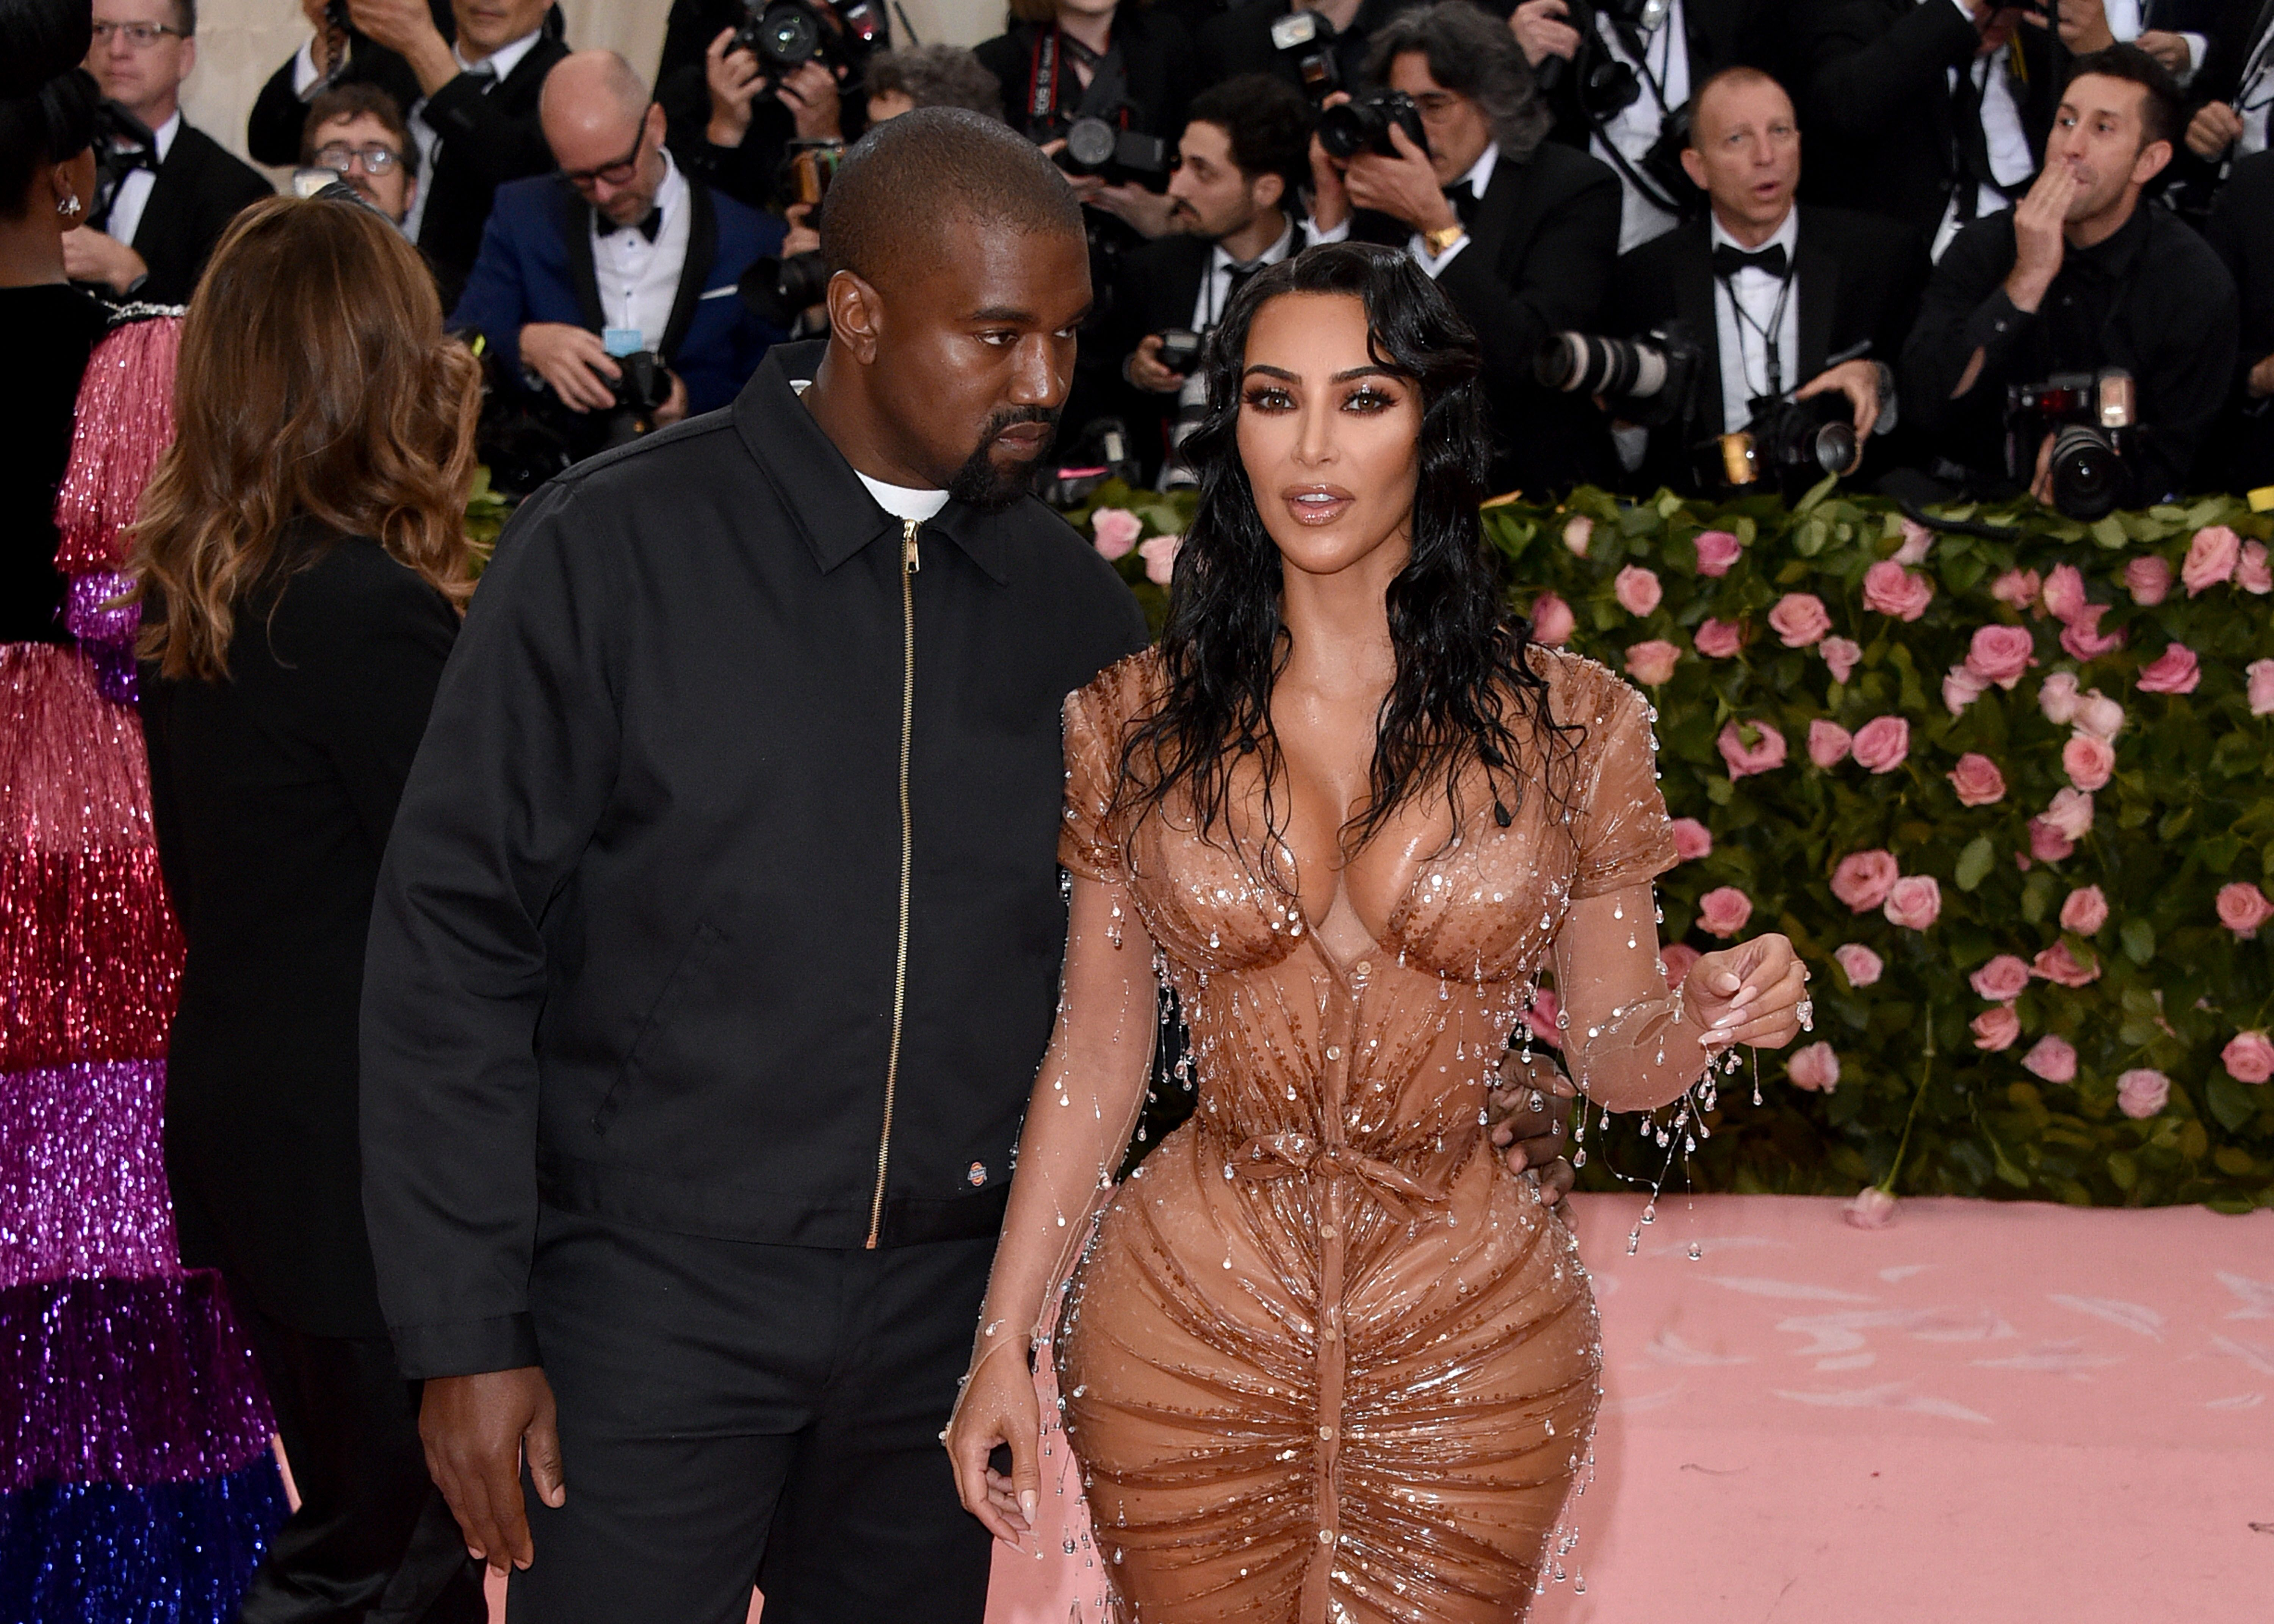 Kim Kardashian and husband Kanye West st the 2019 MET GALA/ Source: Getty Images